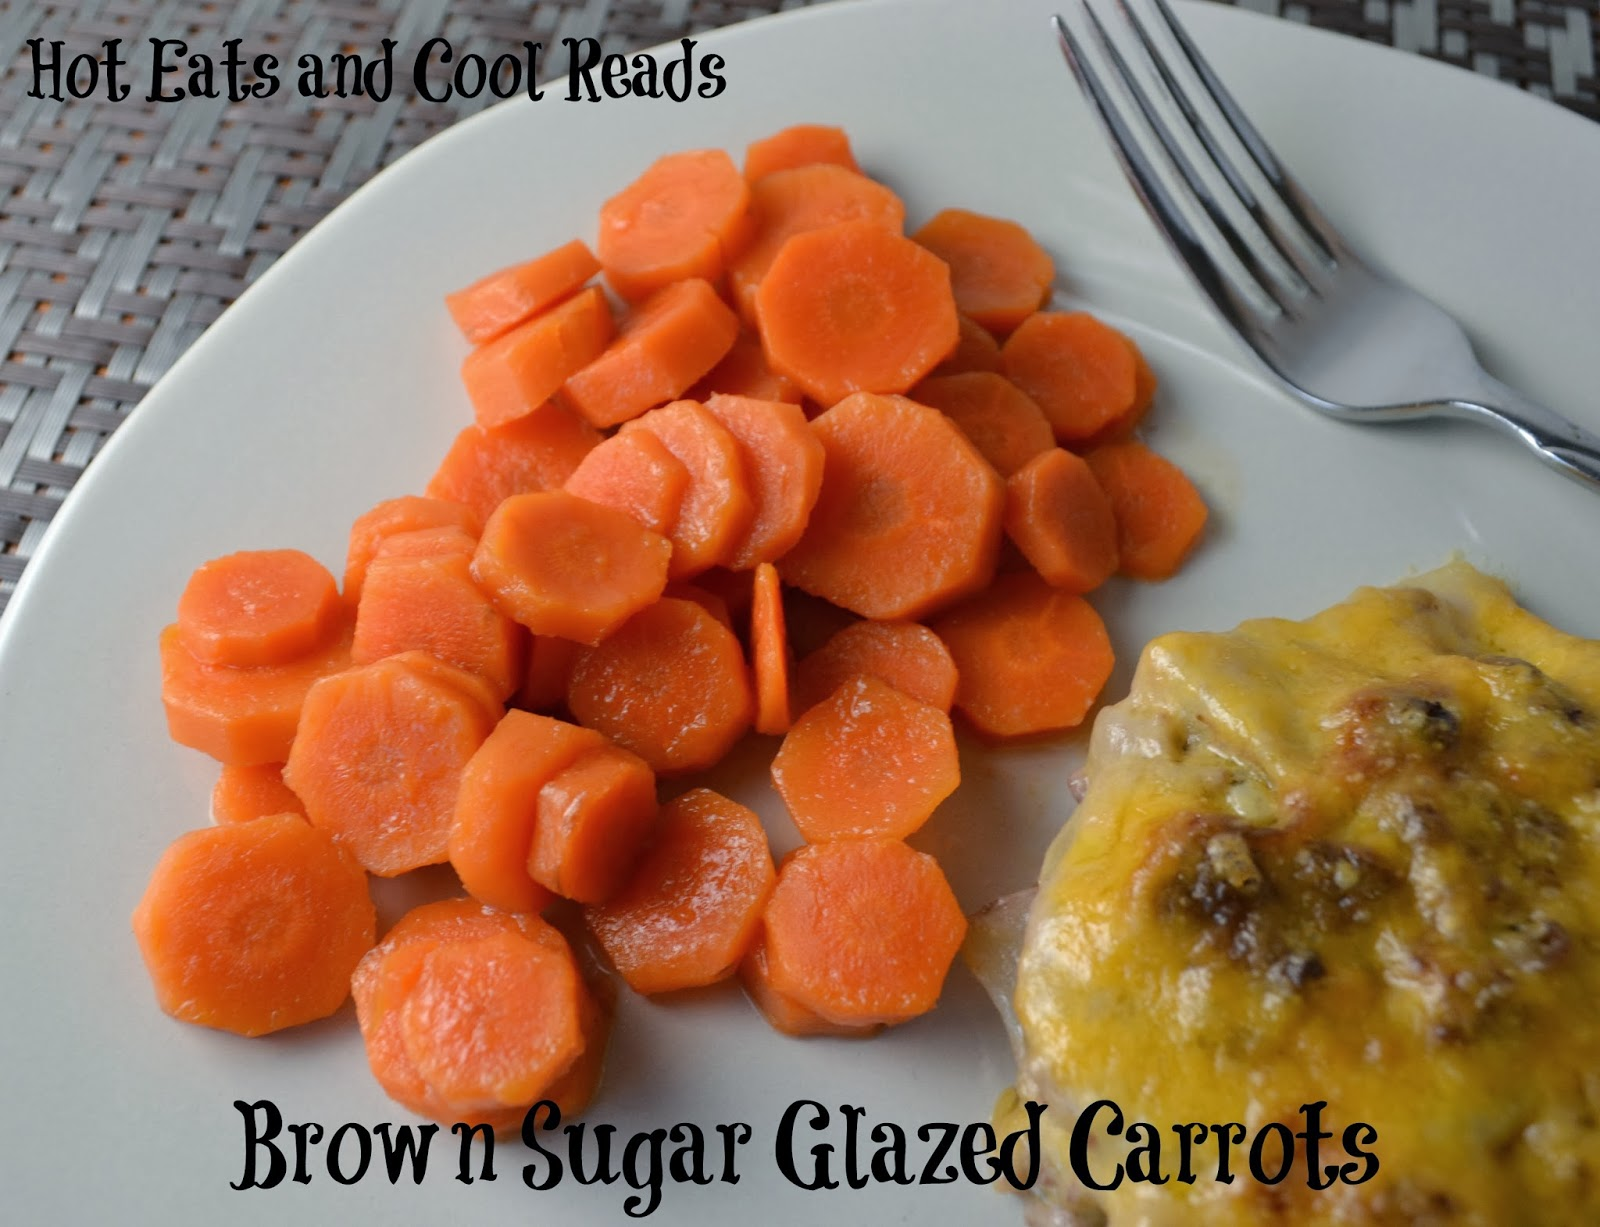 Hot Eats and Cool Reads: Brown Sugar Glazed Carrots Recipe